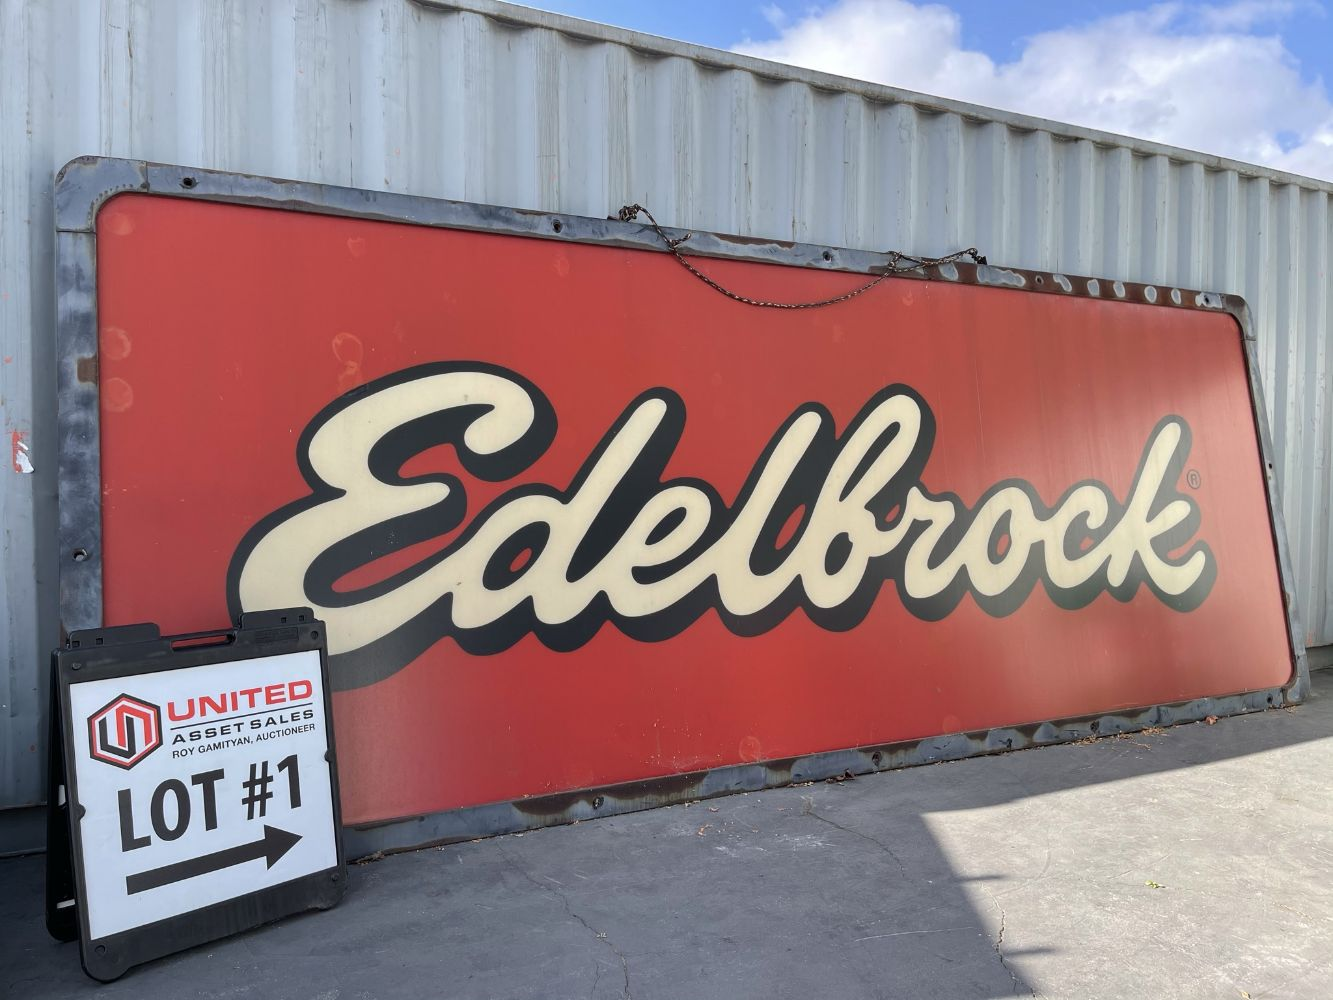 EDELBROCK PERFORMANCE: CNC MACHINE SHOP, 1980 CORVETTE, TOY HAULER, STORAGE CONTAINERS, SUPPORT EQUIPEMENT, TOY STORE AND RELATED ITEMS